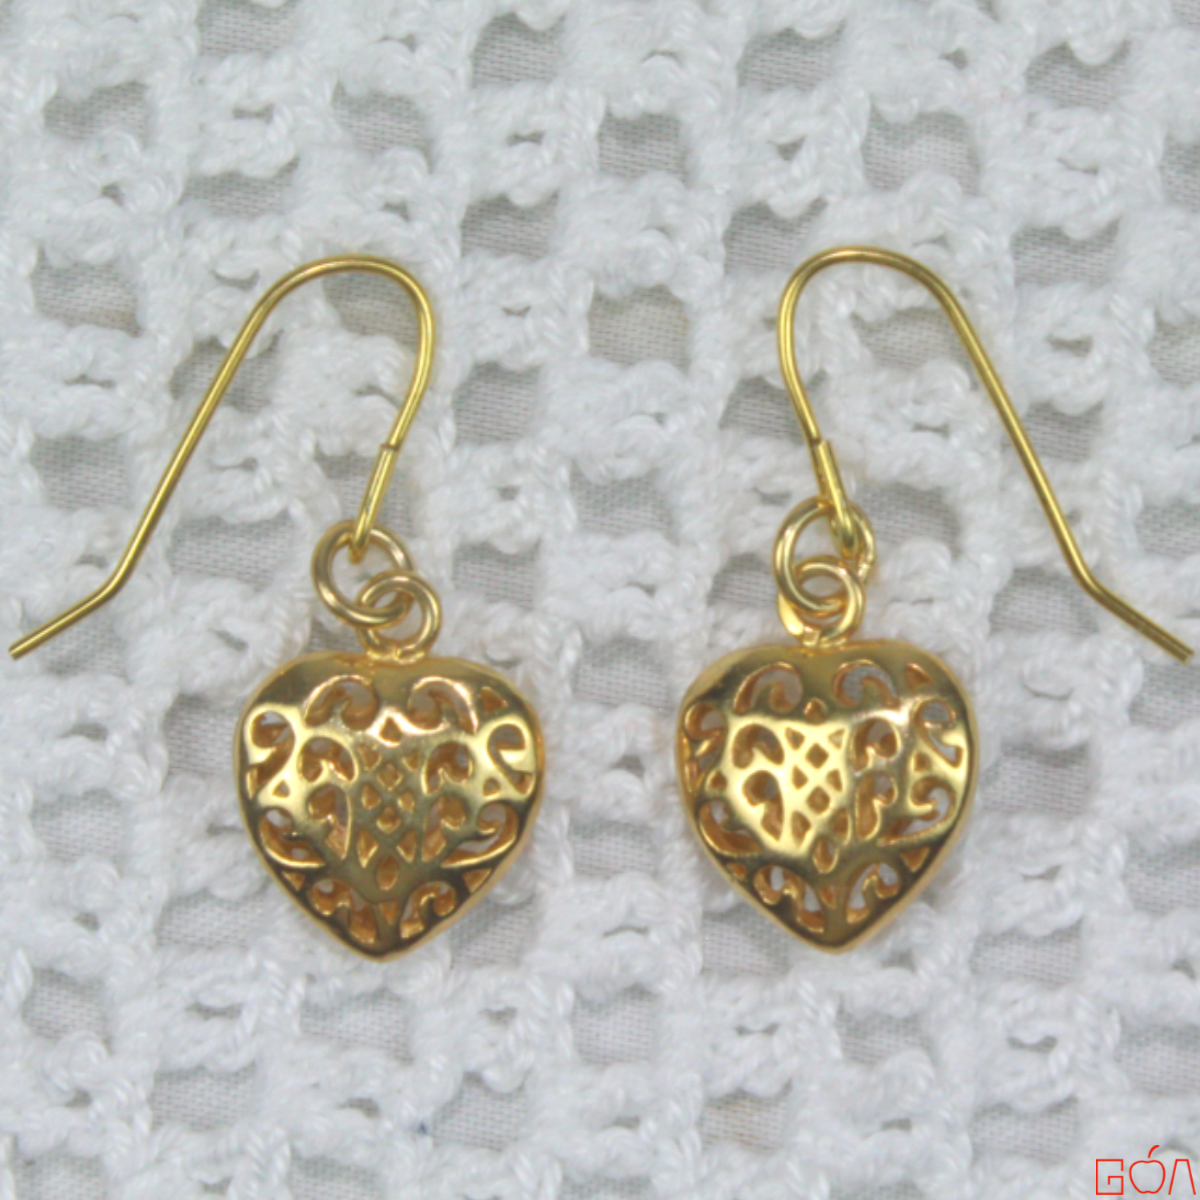 Boucles d'oreilles assorties au collier colombe -plat-RRG-